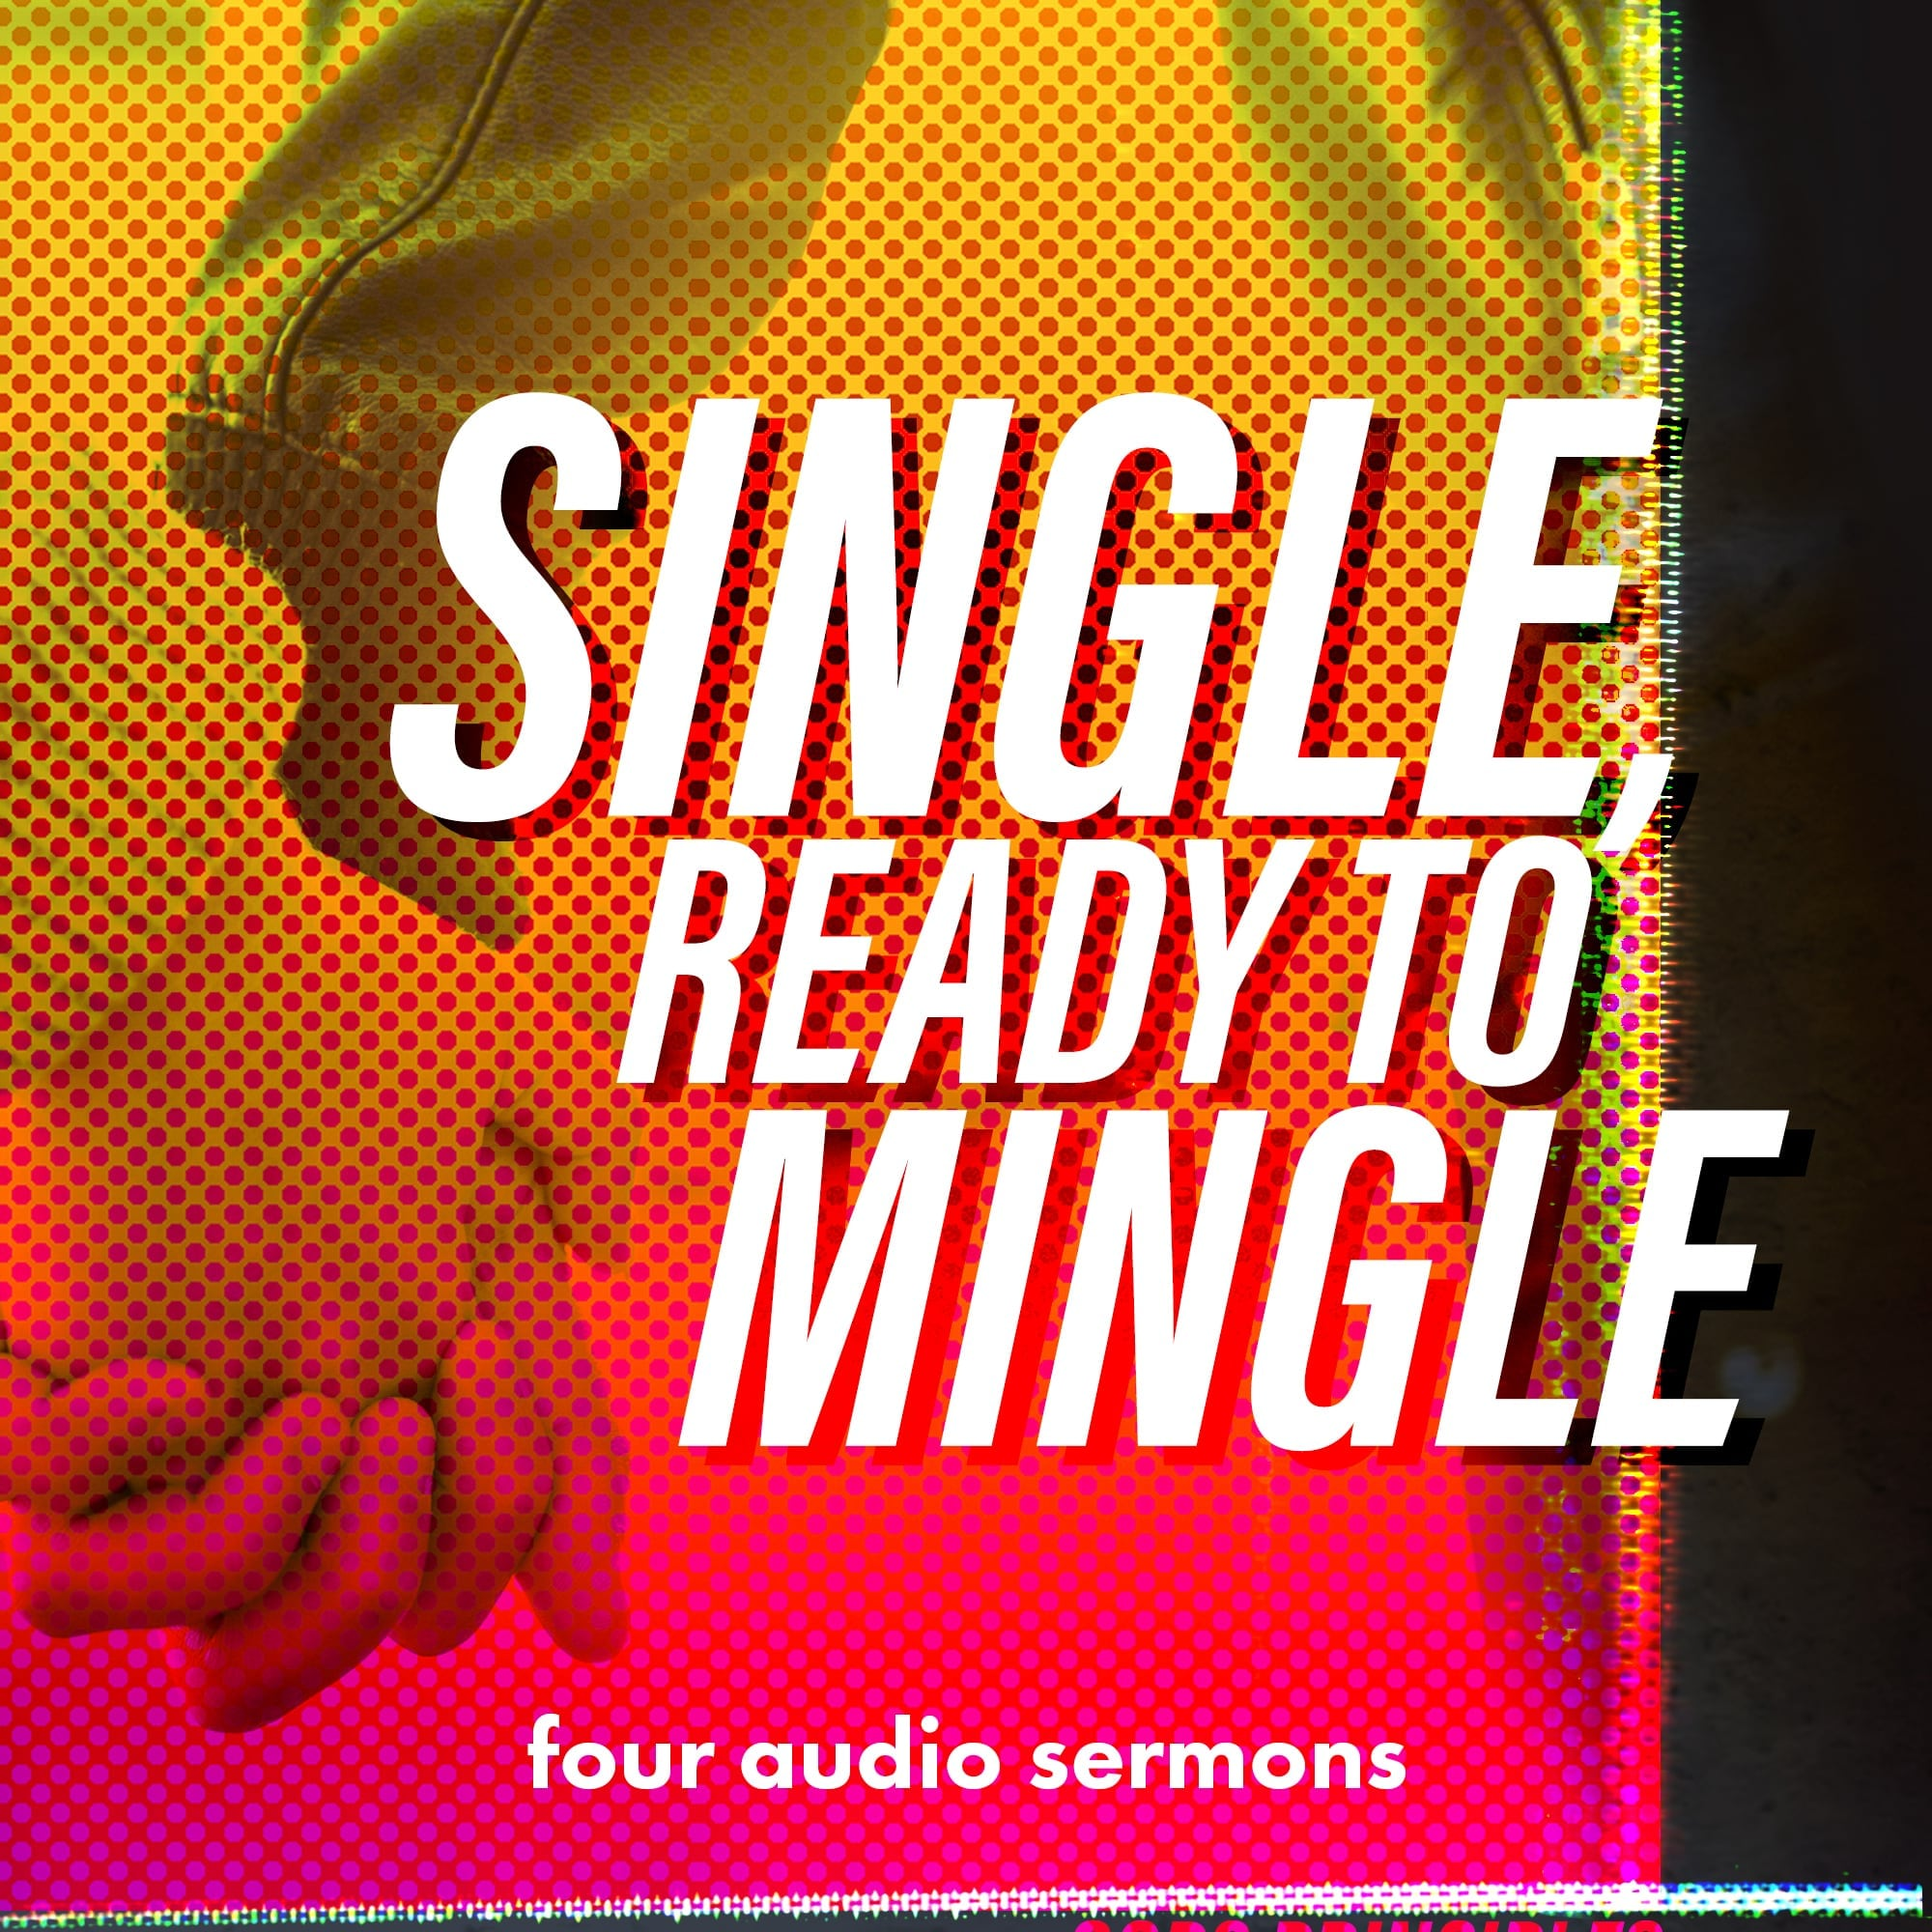 Single, Ready to Mingle (Audio Series)